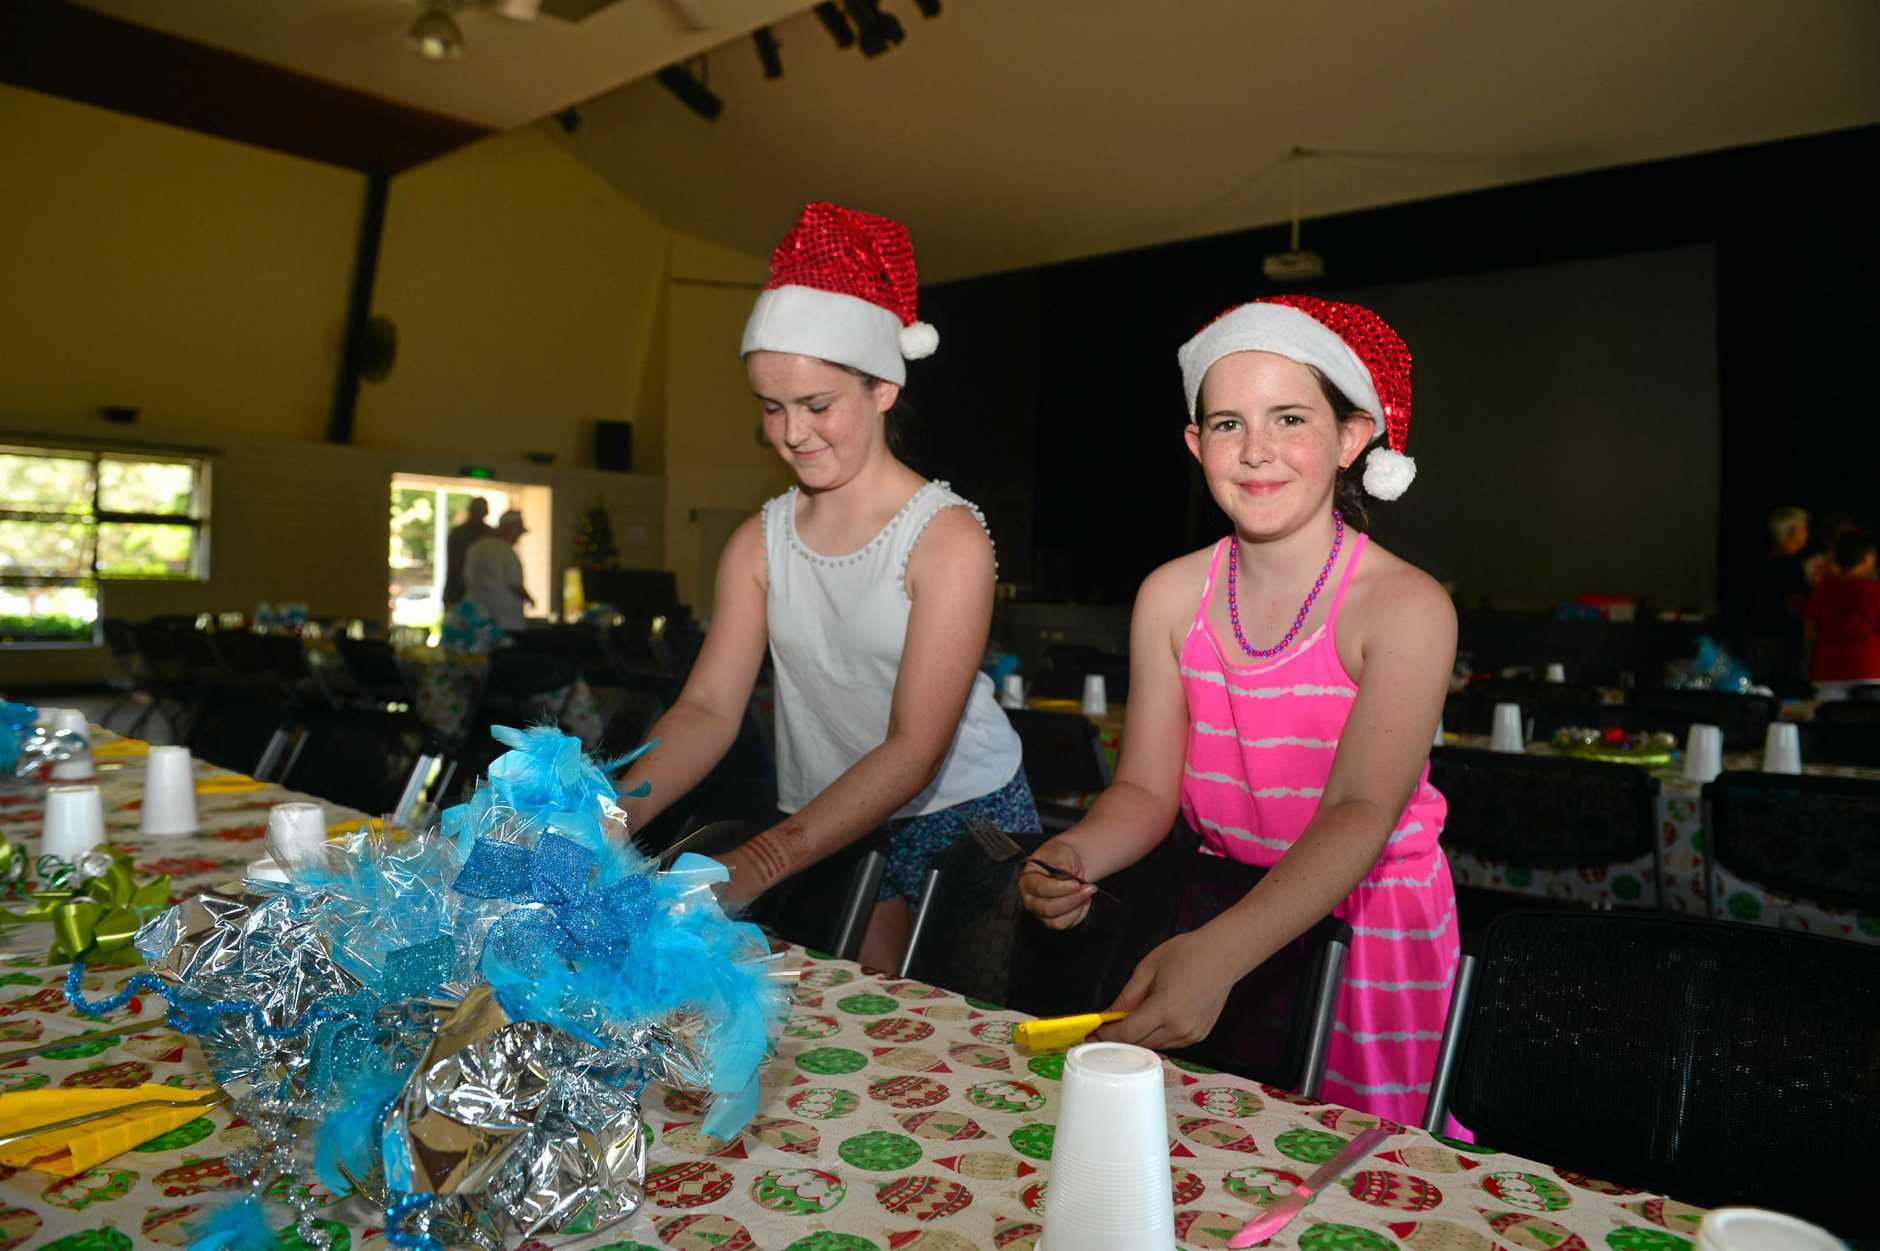 COMMUNITY SPIRIT: Isabella, 12 and Caitlin Barry, 9 have given up part of their Christmas Day to help set the tables that will seat 100 homeless people for Christmas luncheon.